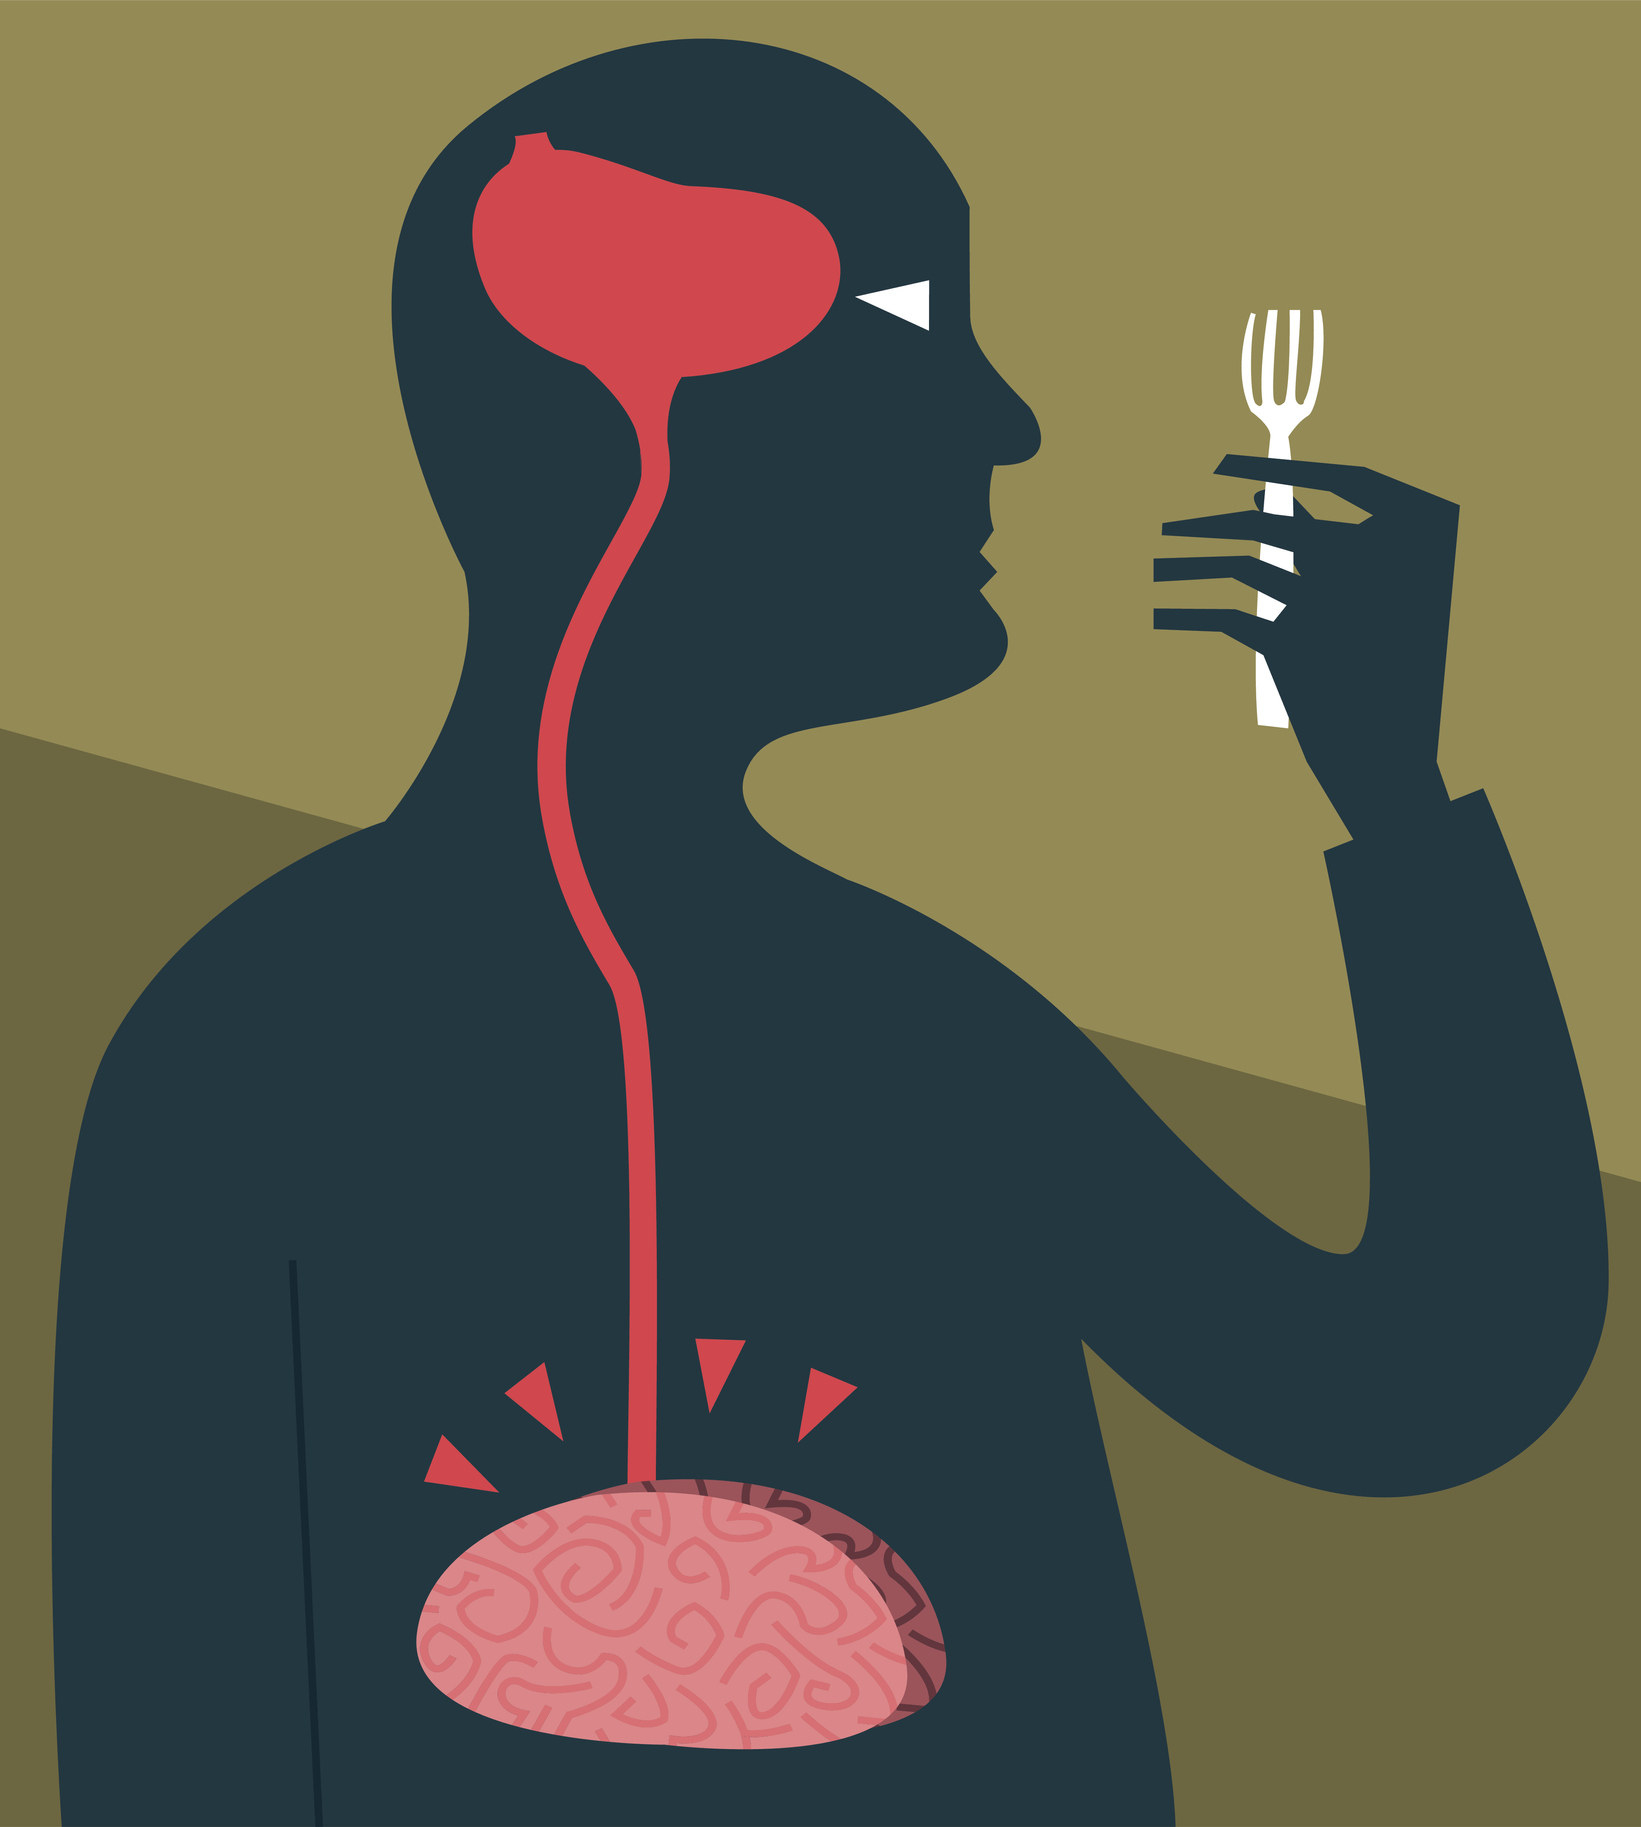 An illustration of a man staring at a fork, hungry